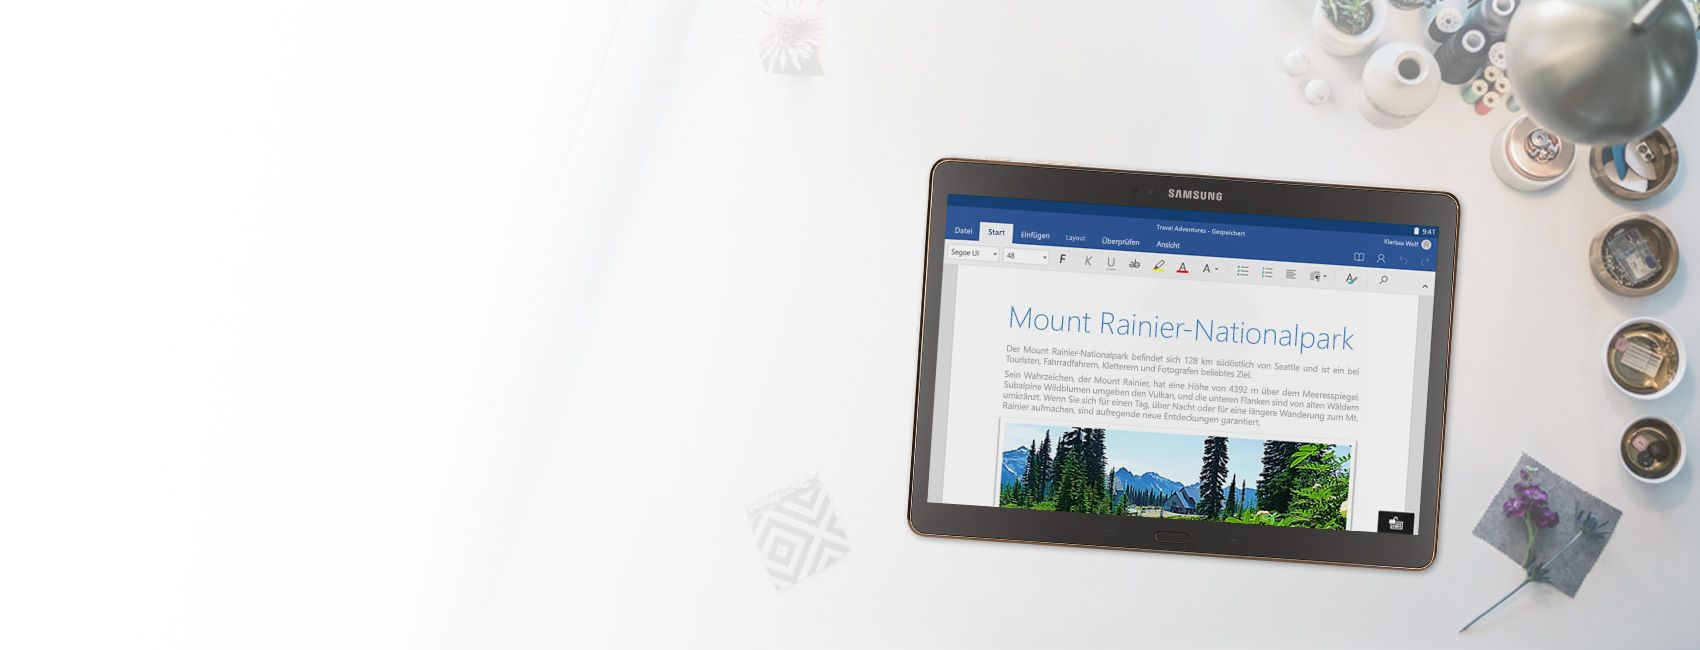 Ein Tablet mit einem Word-Dokument zum Mount Rainier National Park